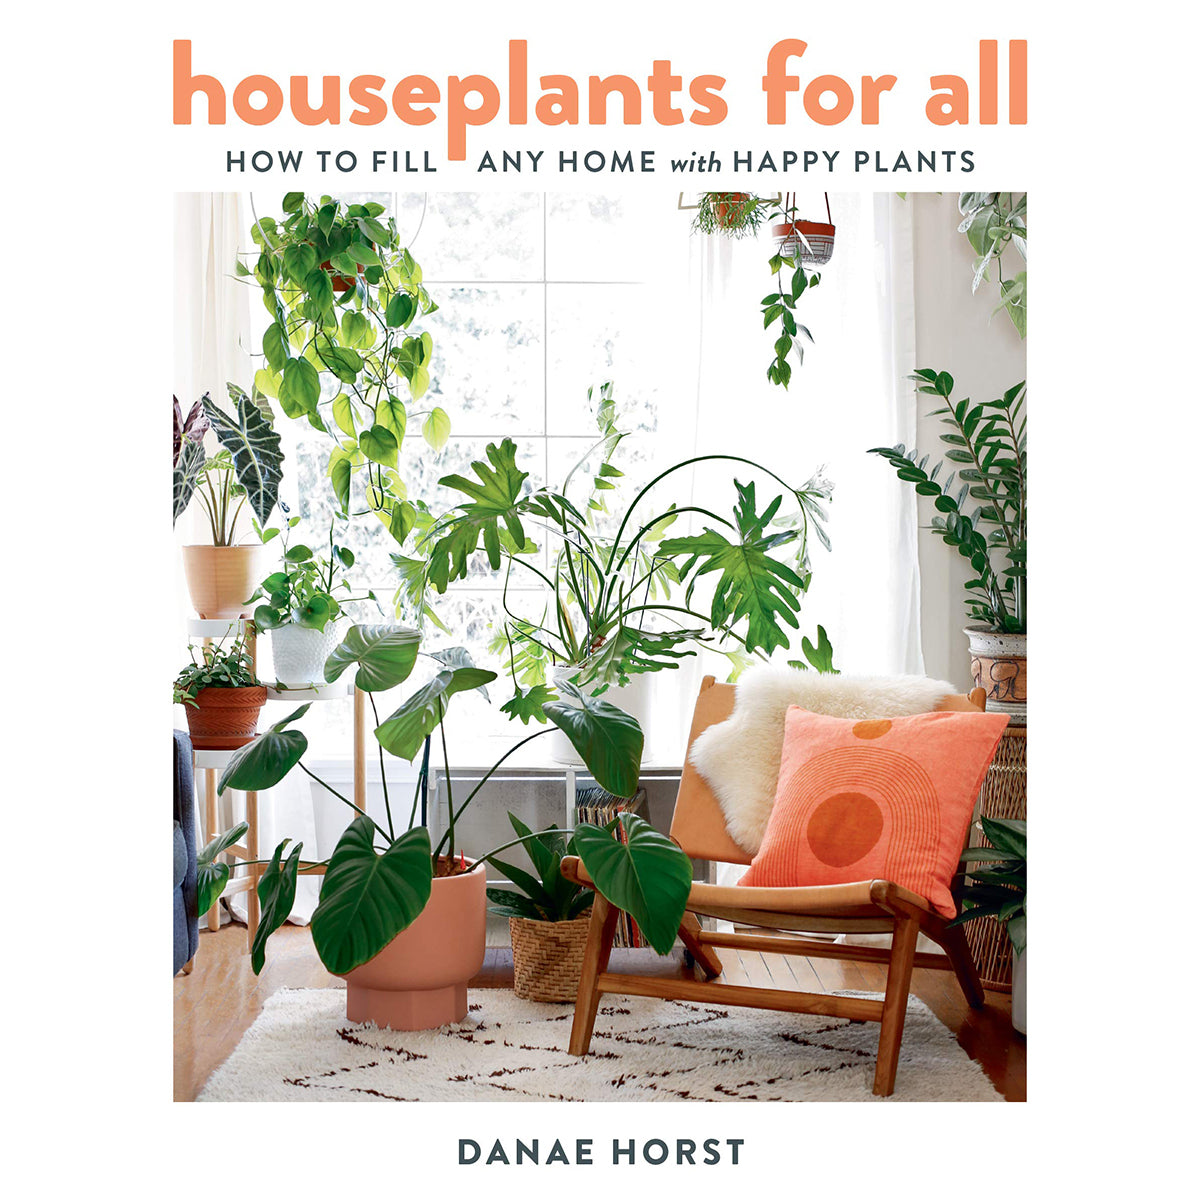 Houseplants for All by Danae Horst